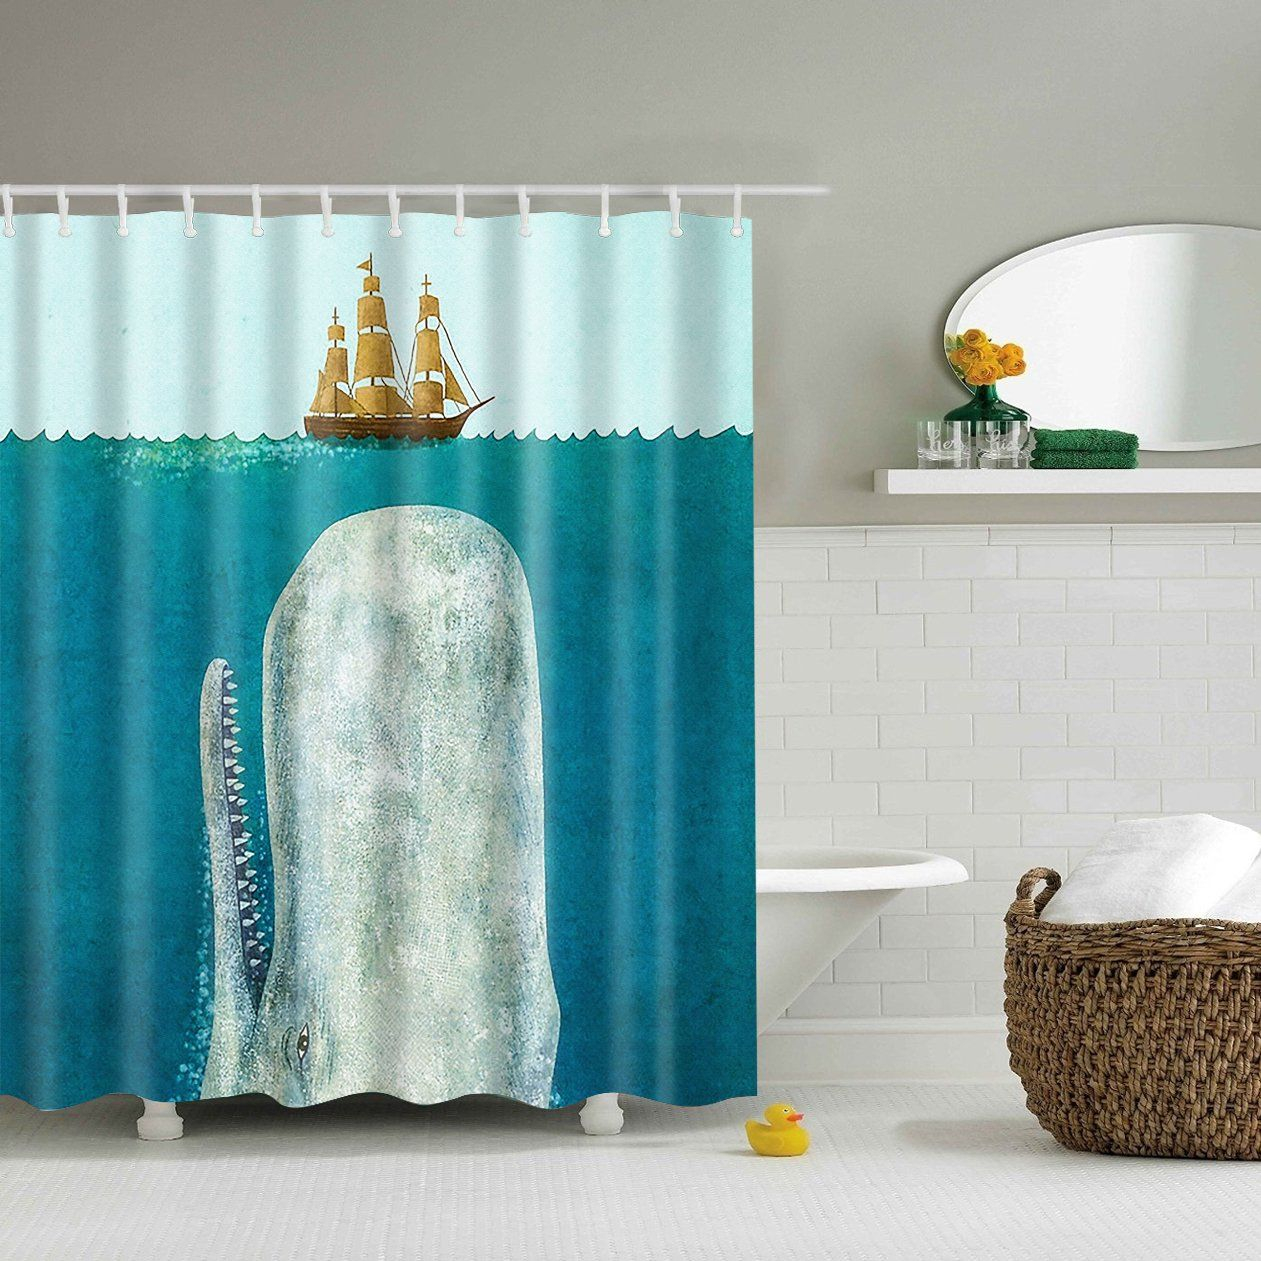 Ancient Boat The Whale Shower Curtain Bathroom Decor Fabric